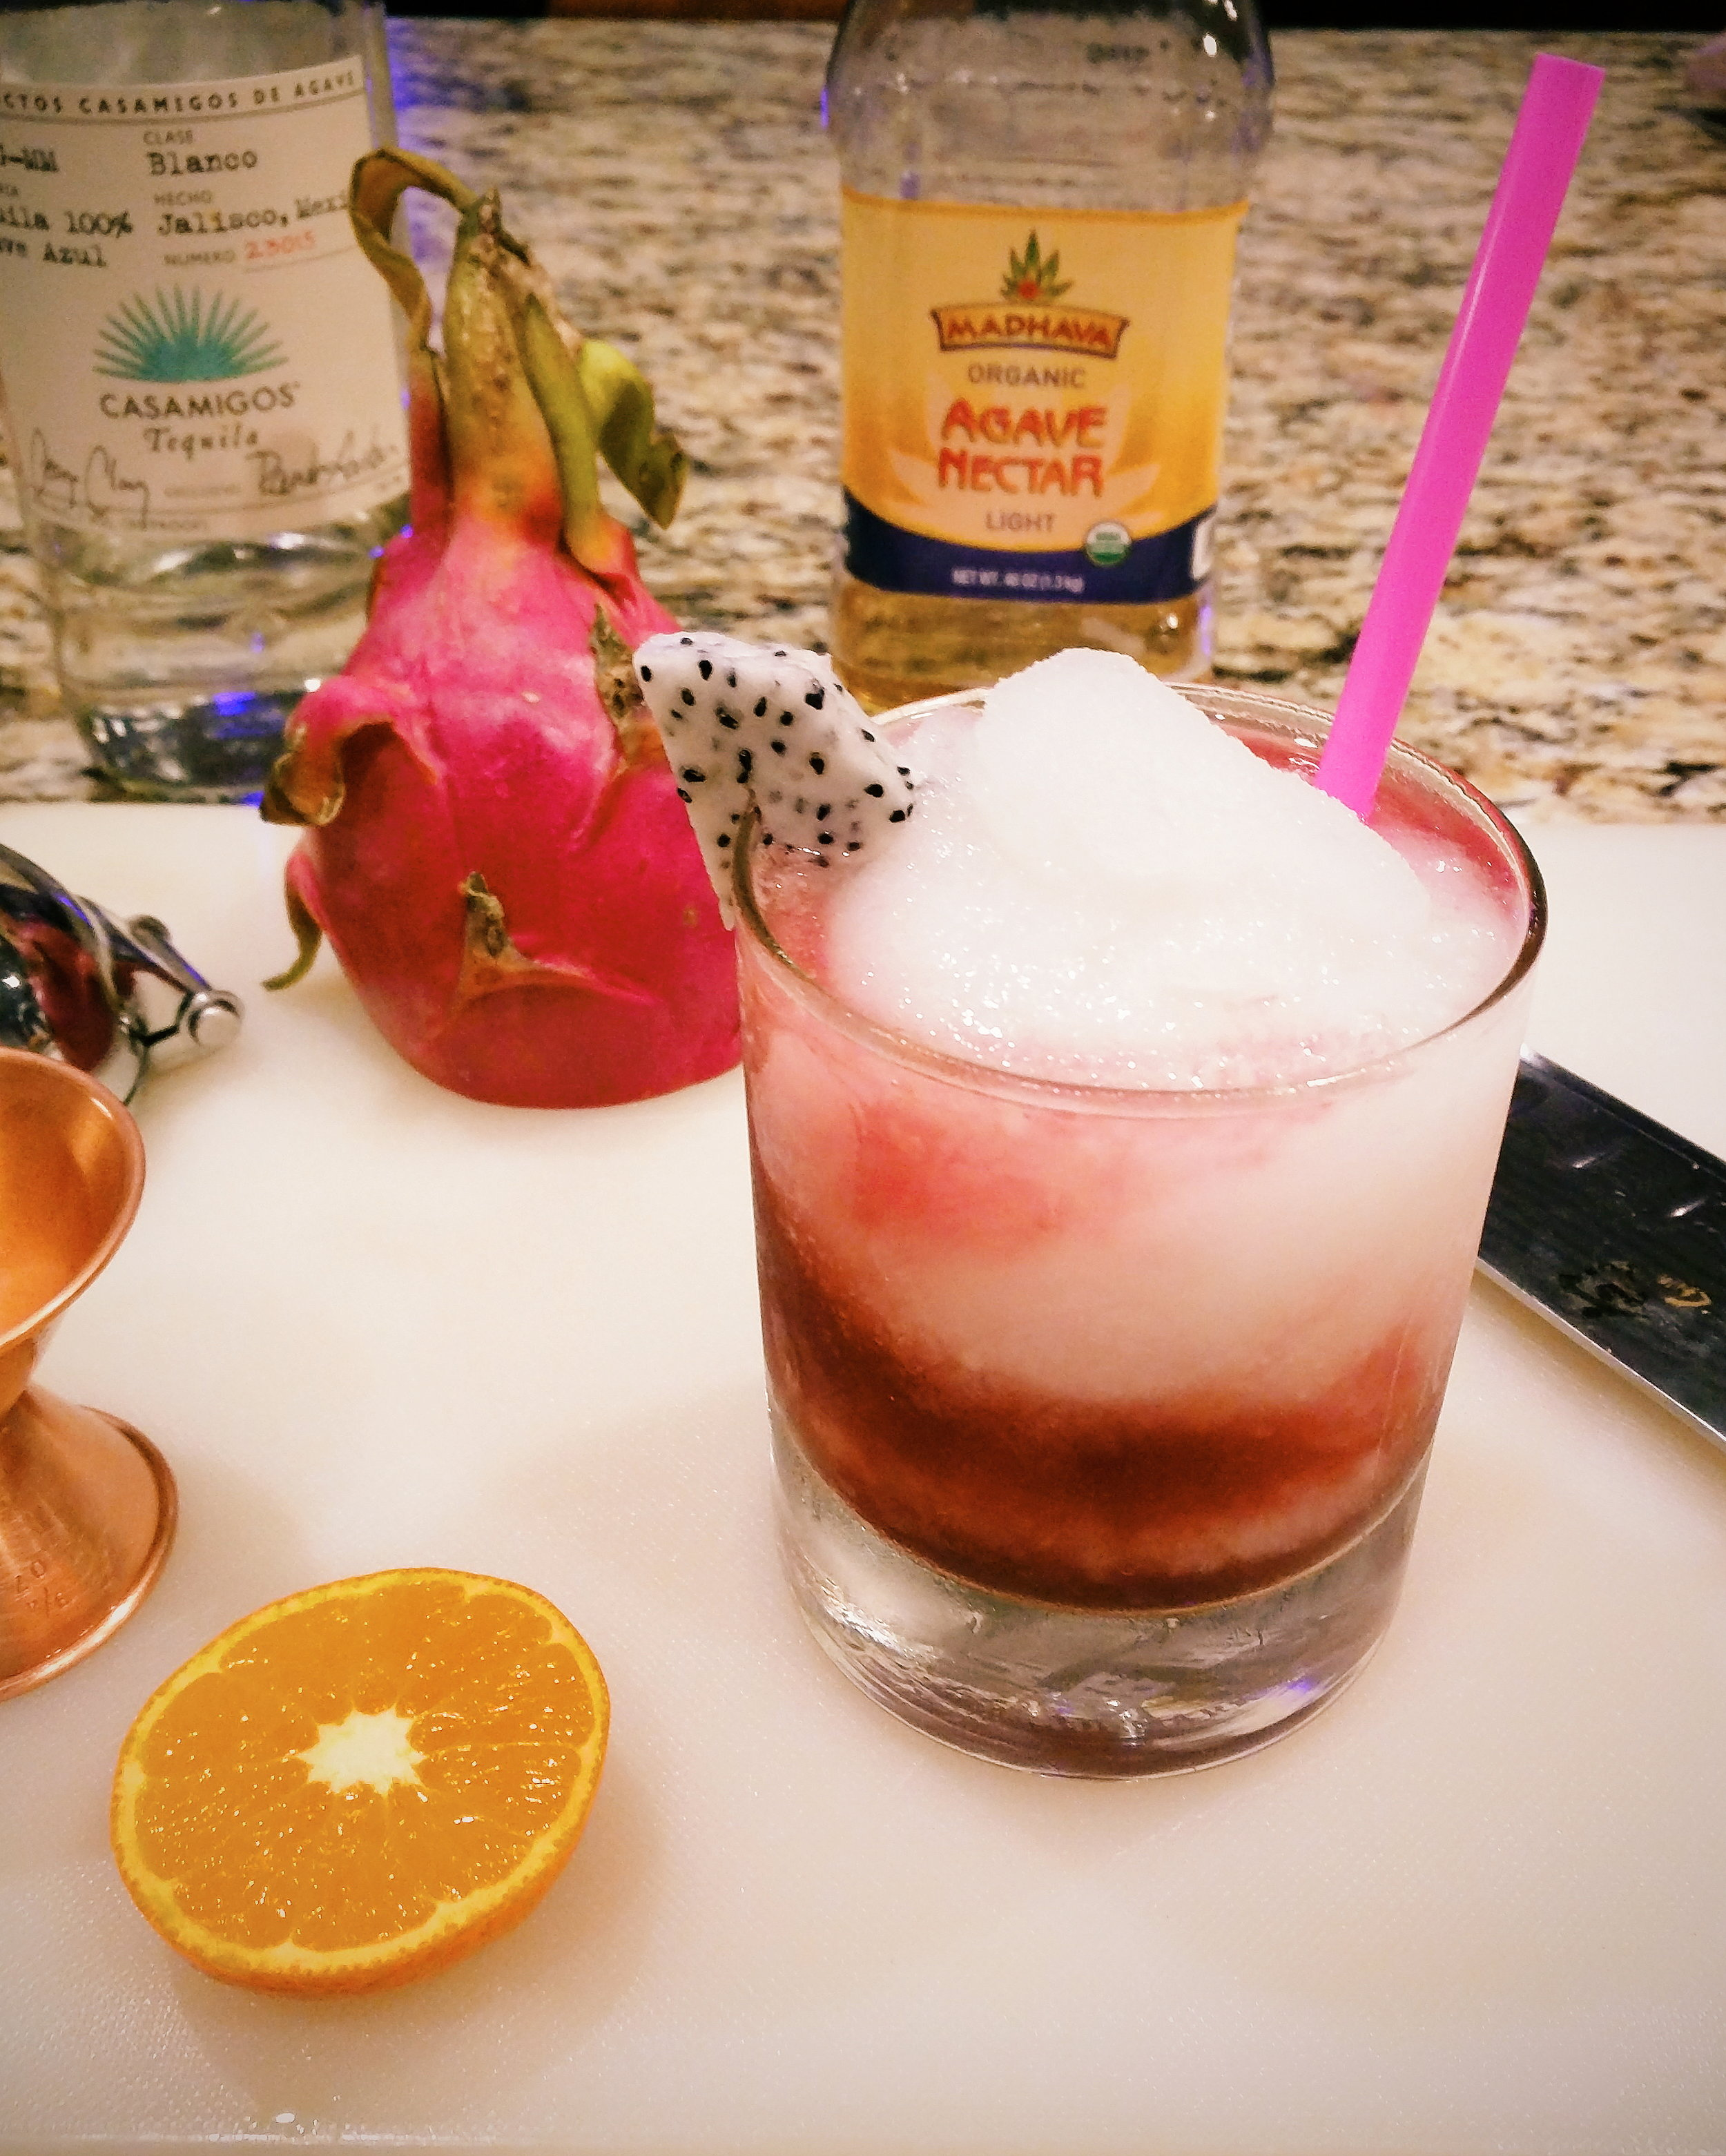 This one comes from The Whiskey Ice Co. Kitchen - The dragon fruit garnish does not come with the standard Mambo, but hey, it works.